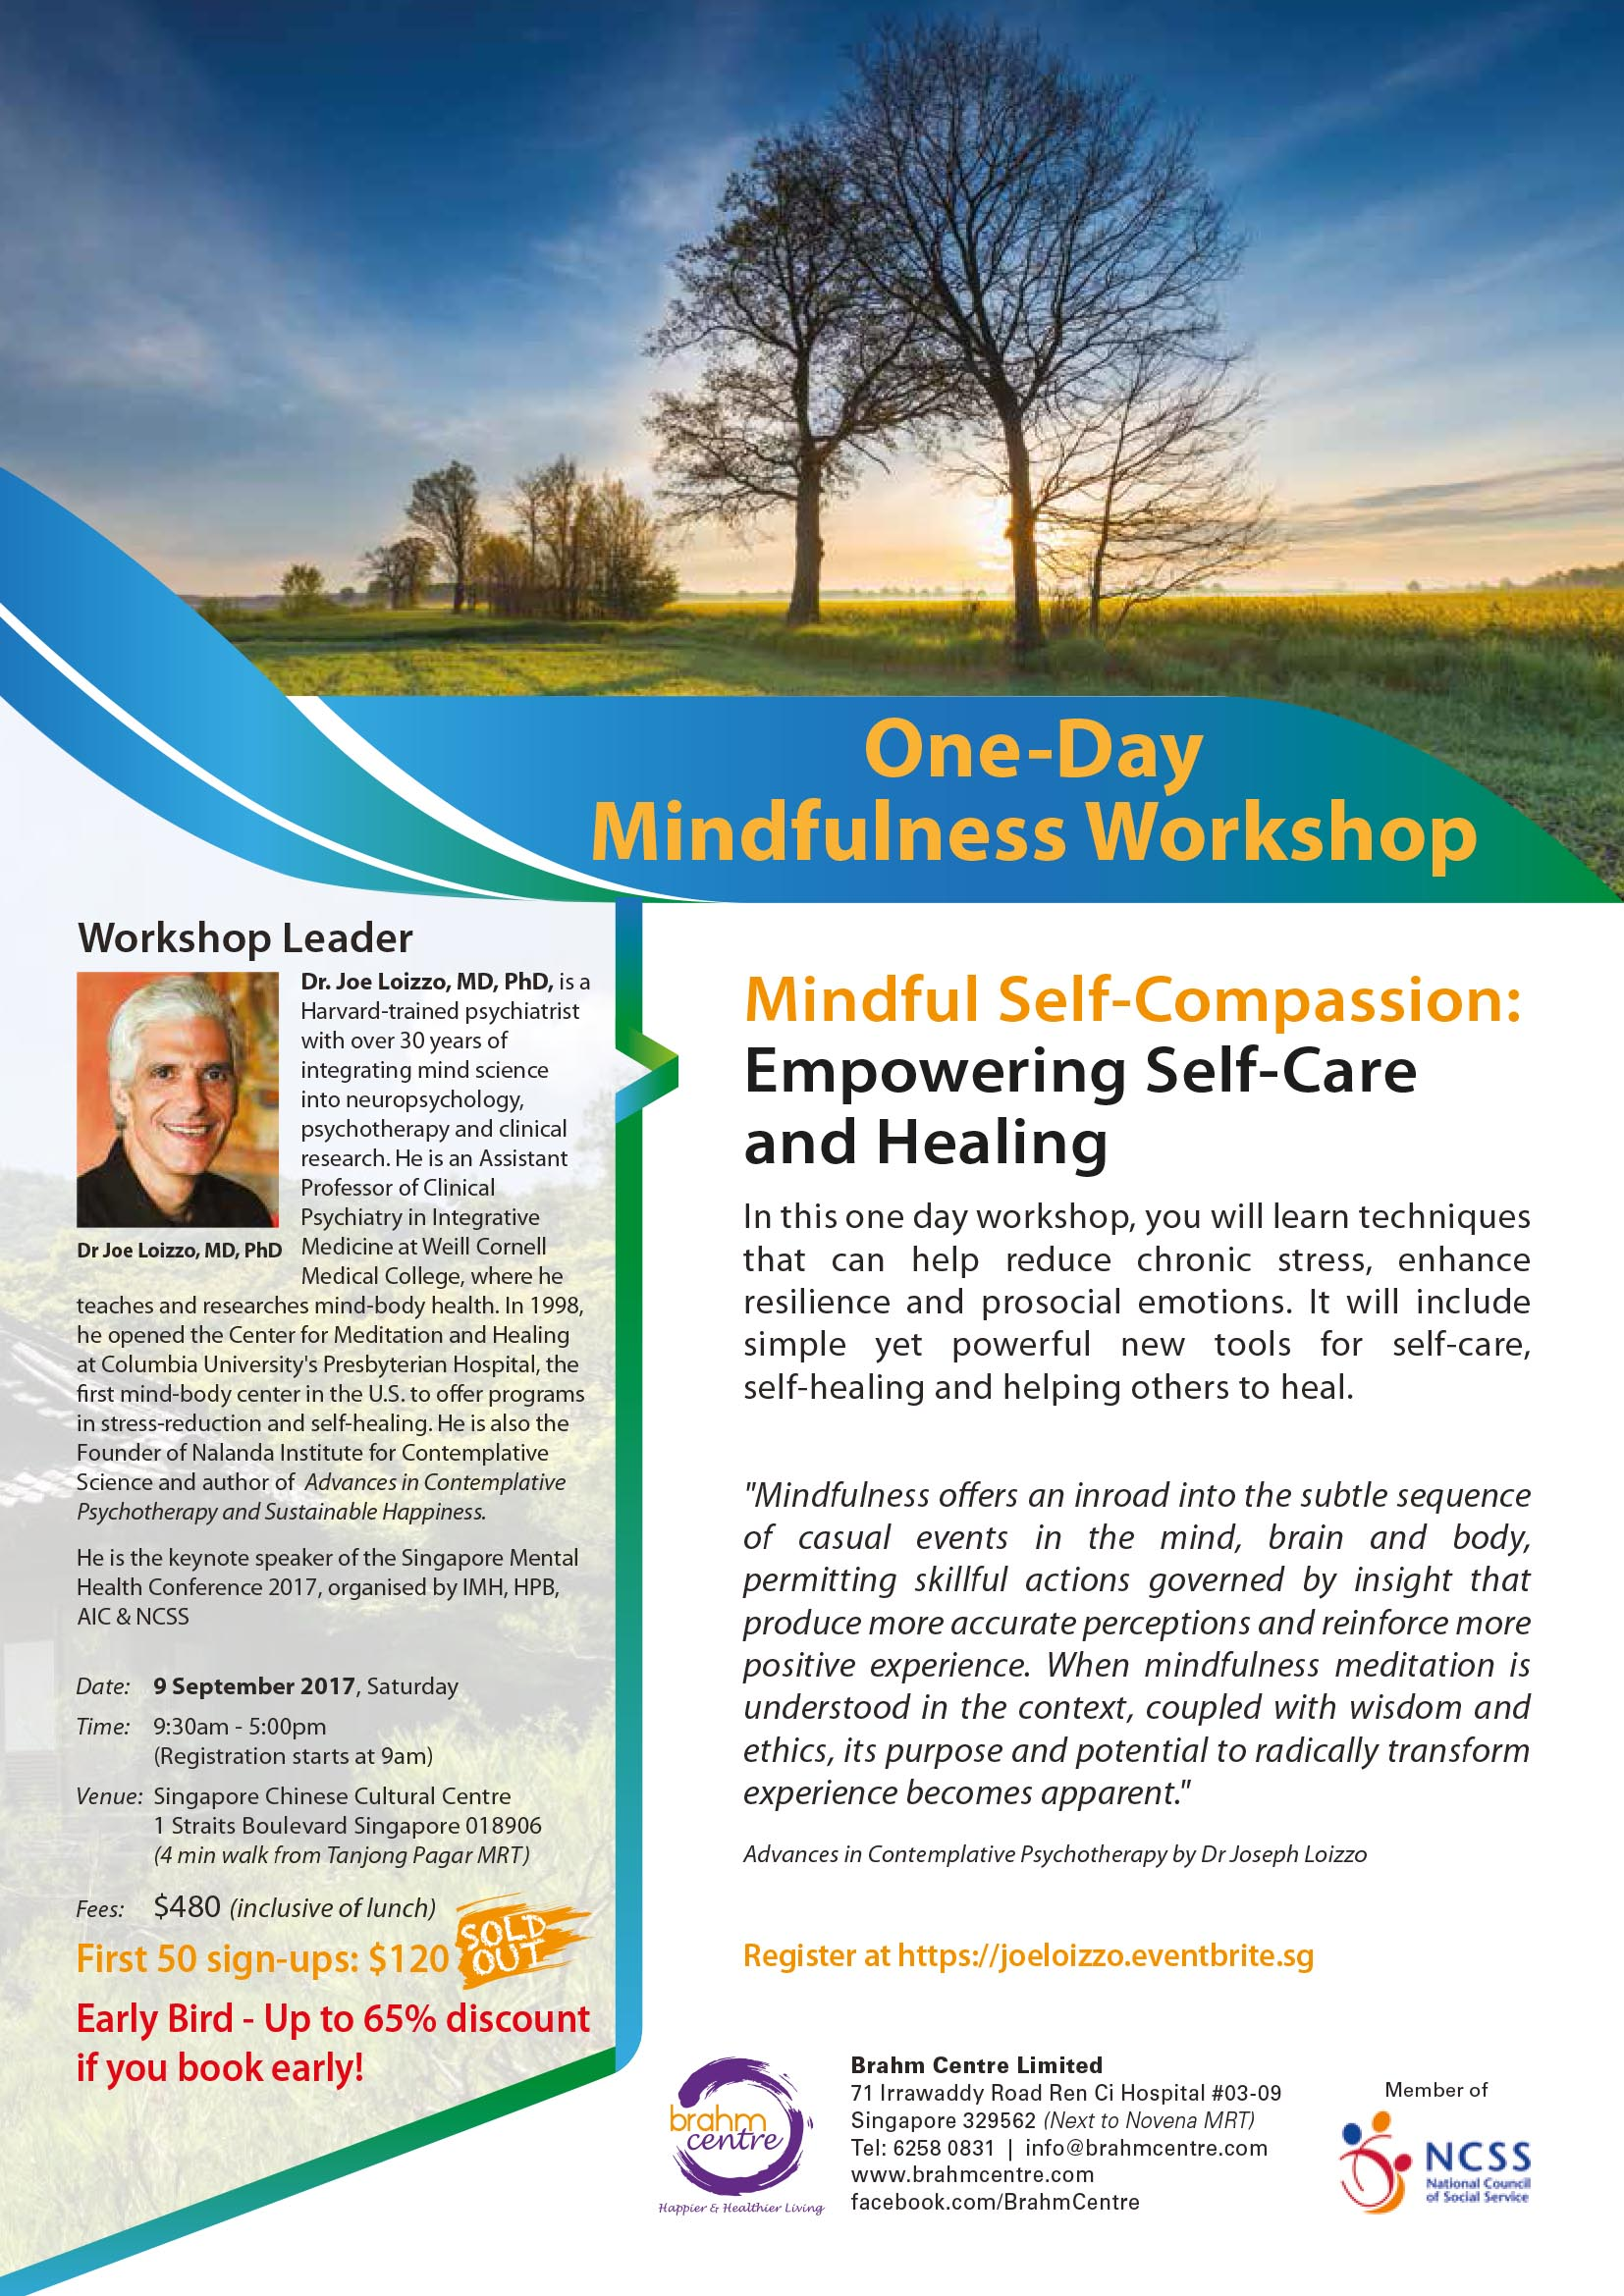 One Day Mindfulness Self-Compassion Workshop